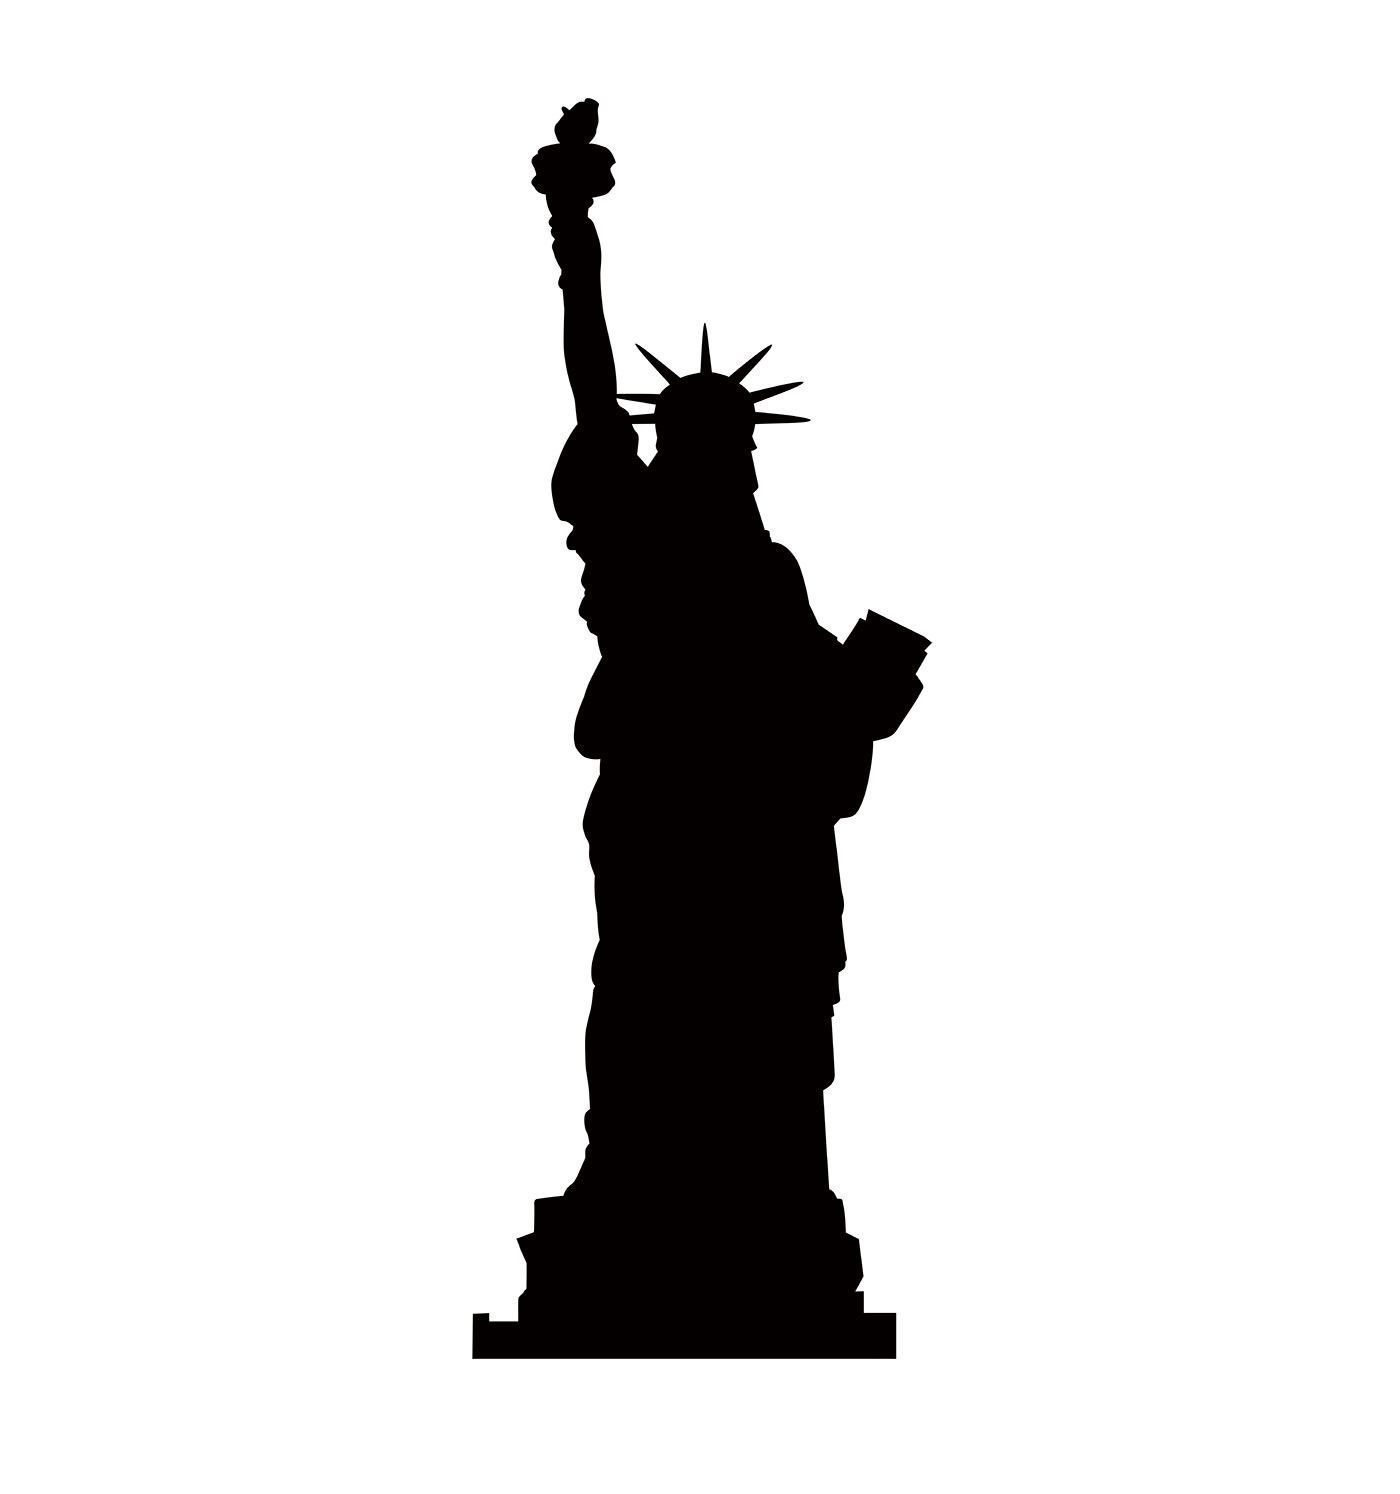 Statue of liberty clipart cardboard. Silhouette stand up features